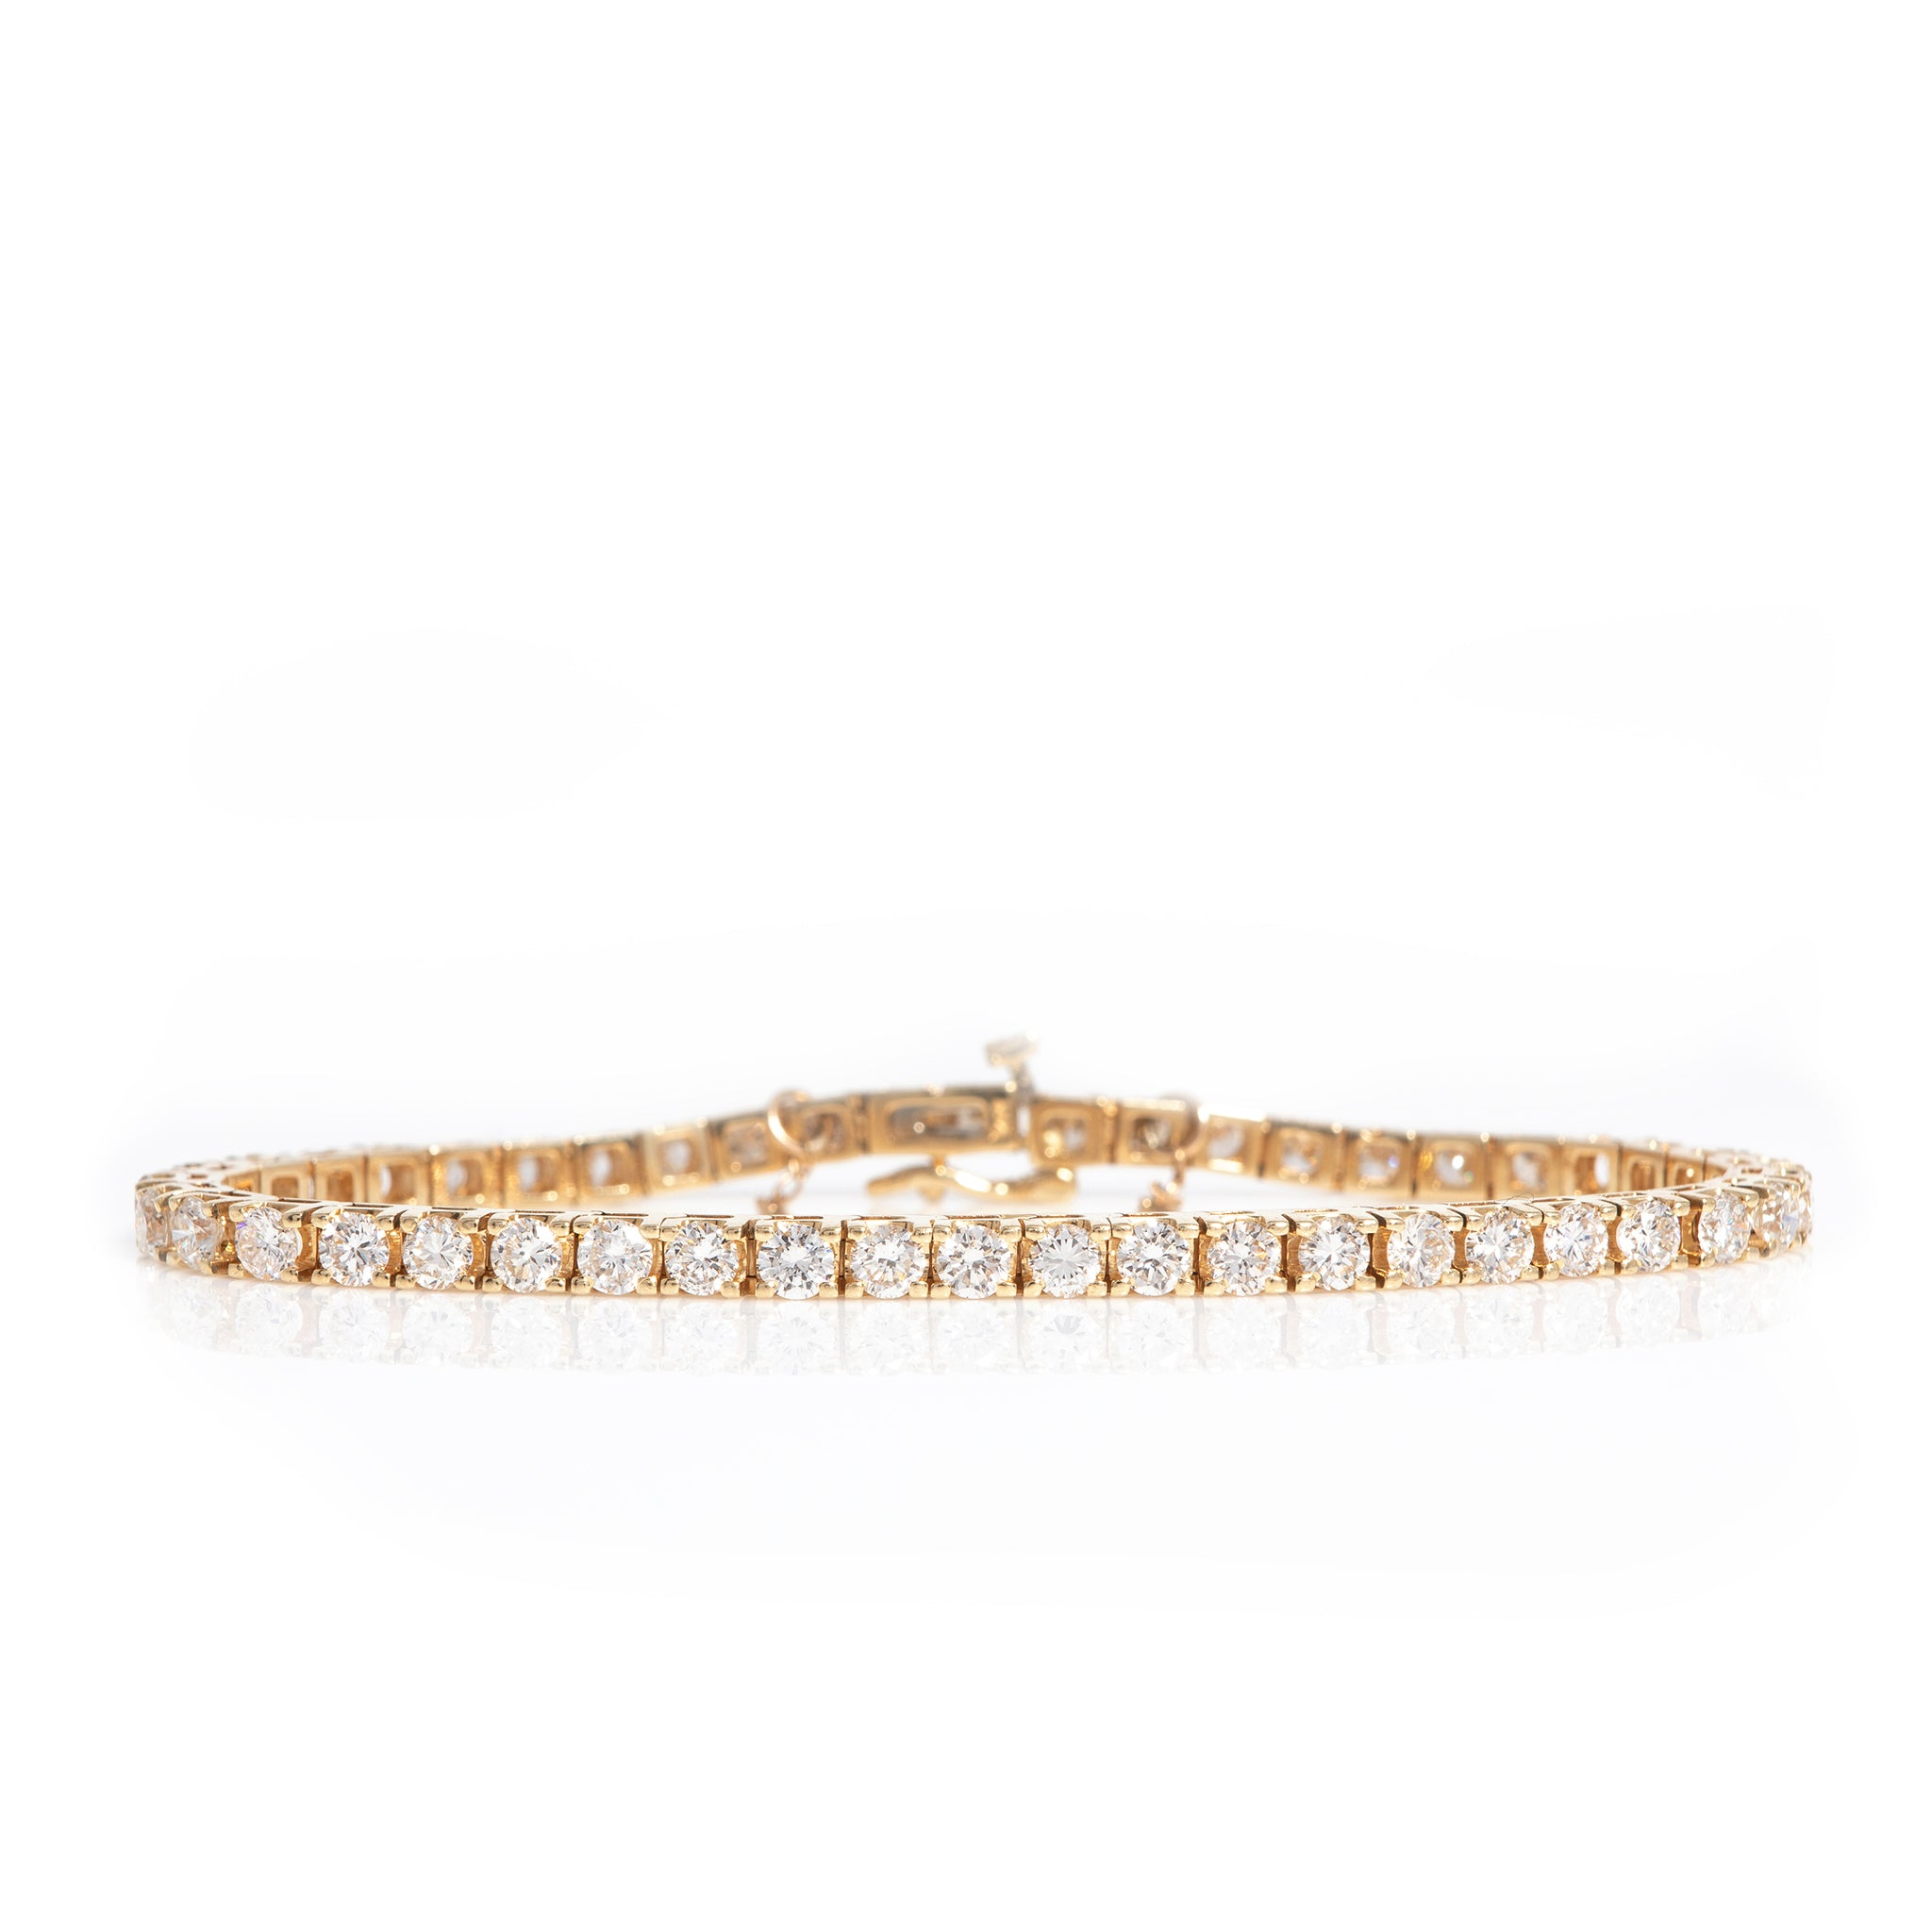 *SOLD* Five Carat Diamond Tennis Bracelet in Yellow Gold - Sindur